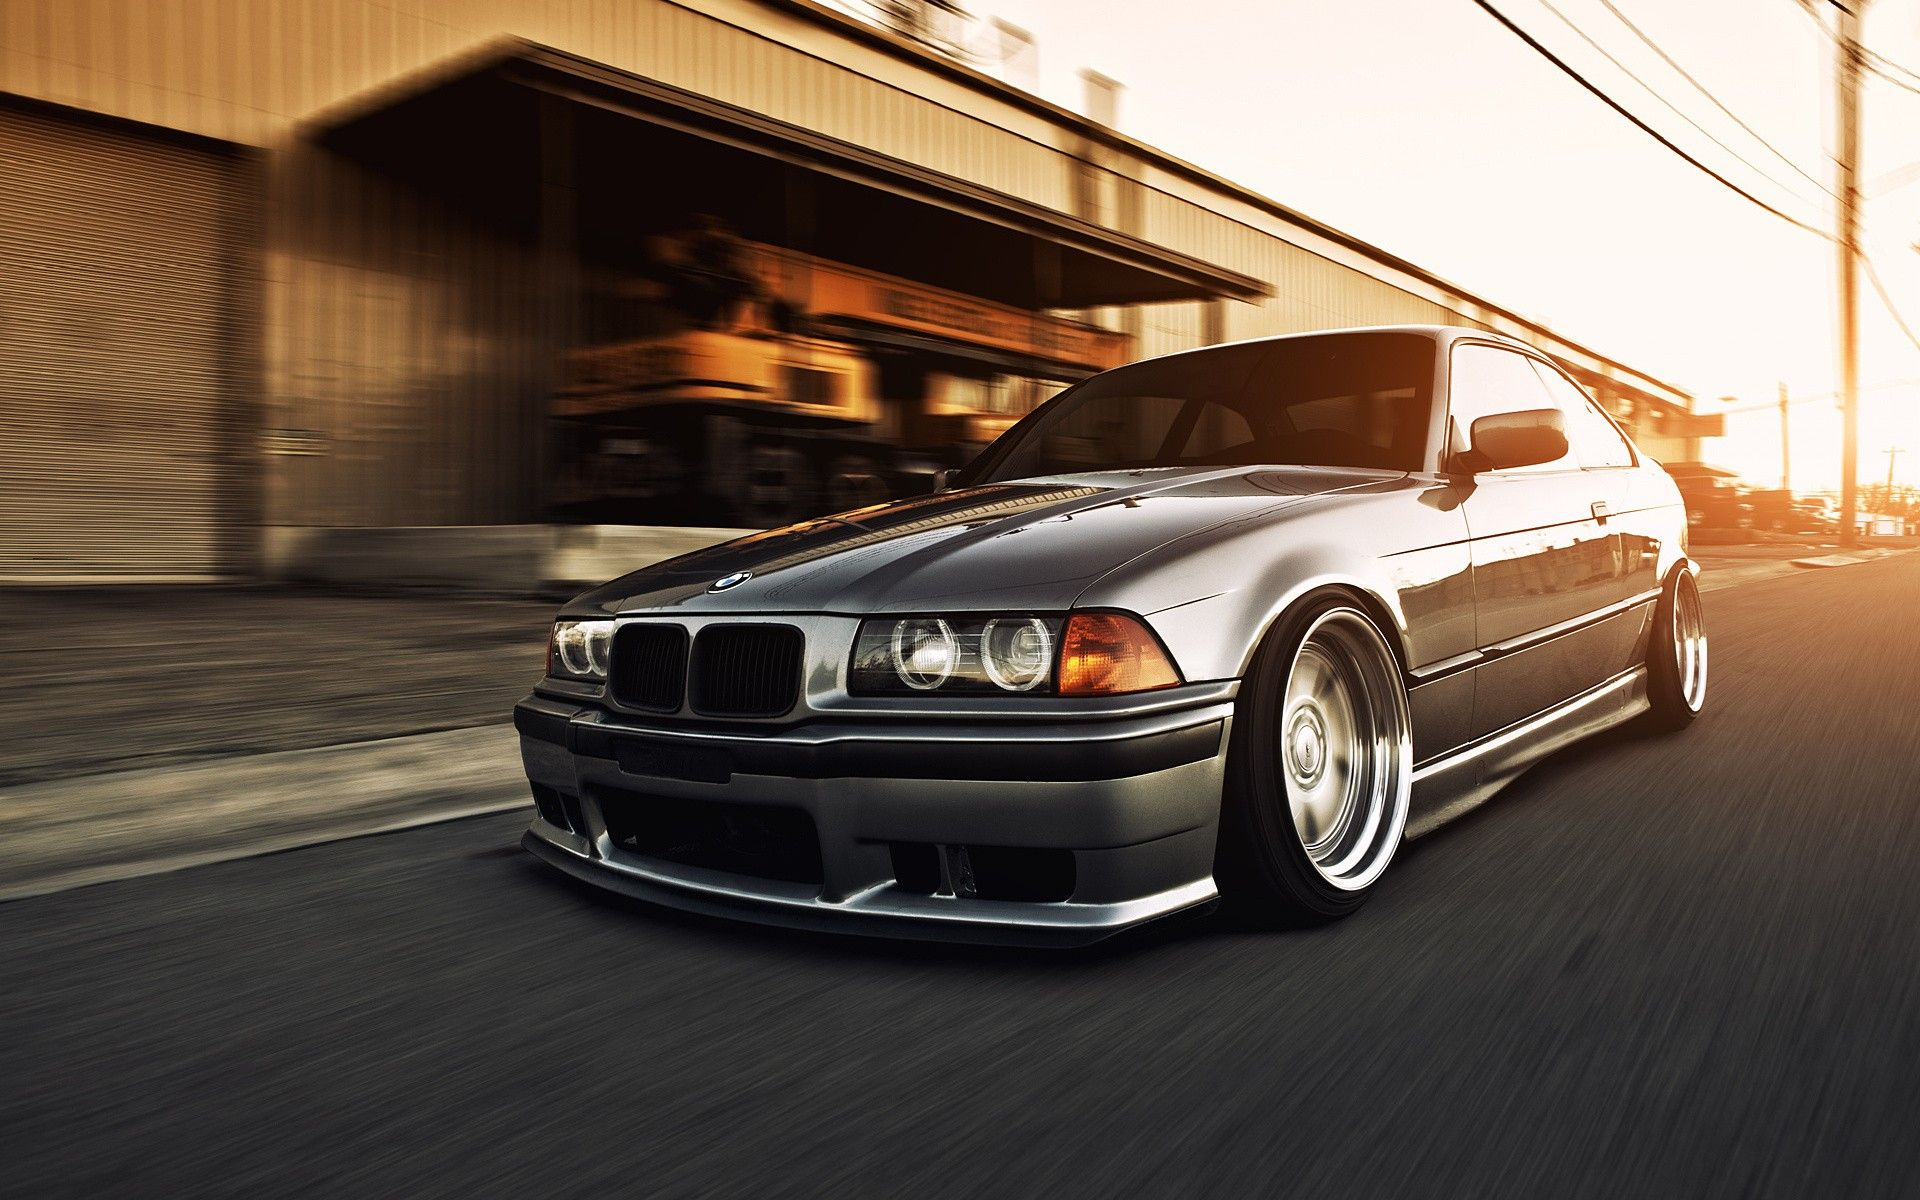 At First I Labelled This As A Lowered E36 M3 But They Had